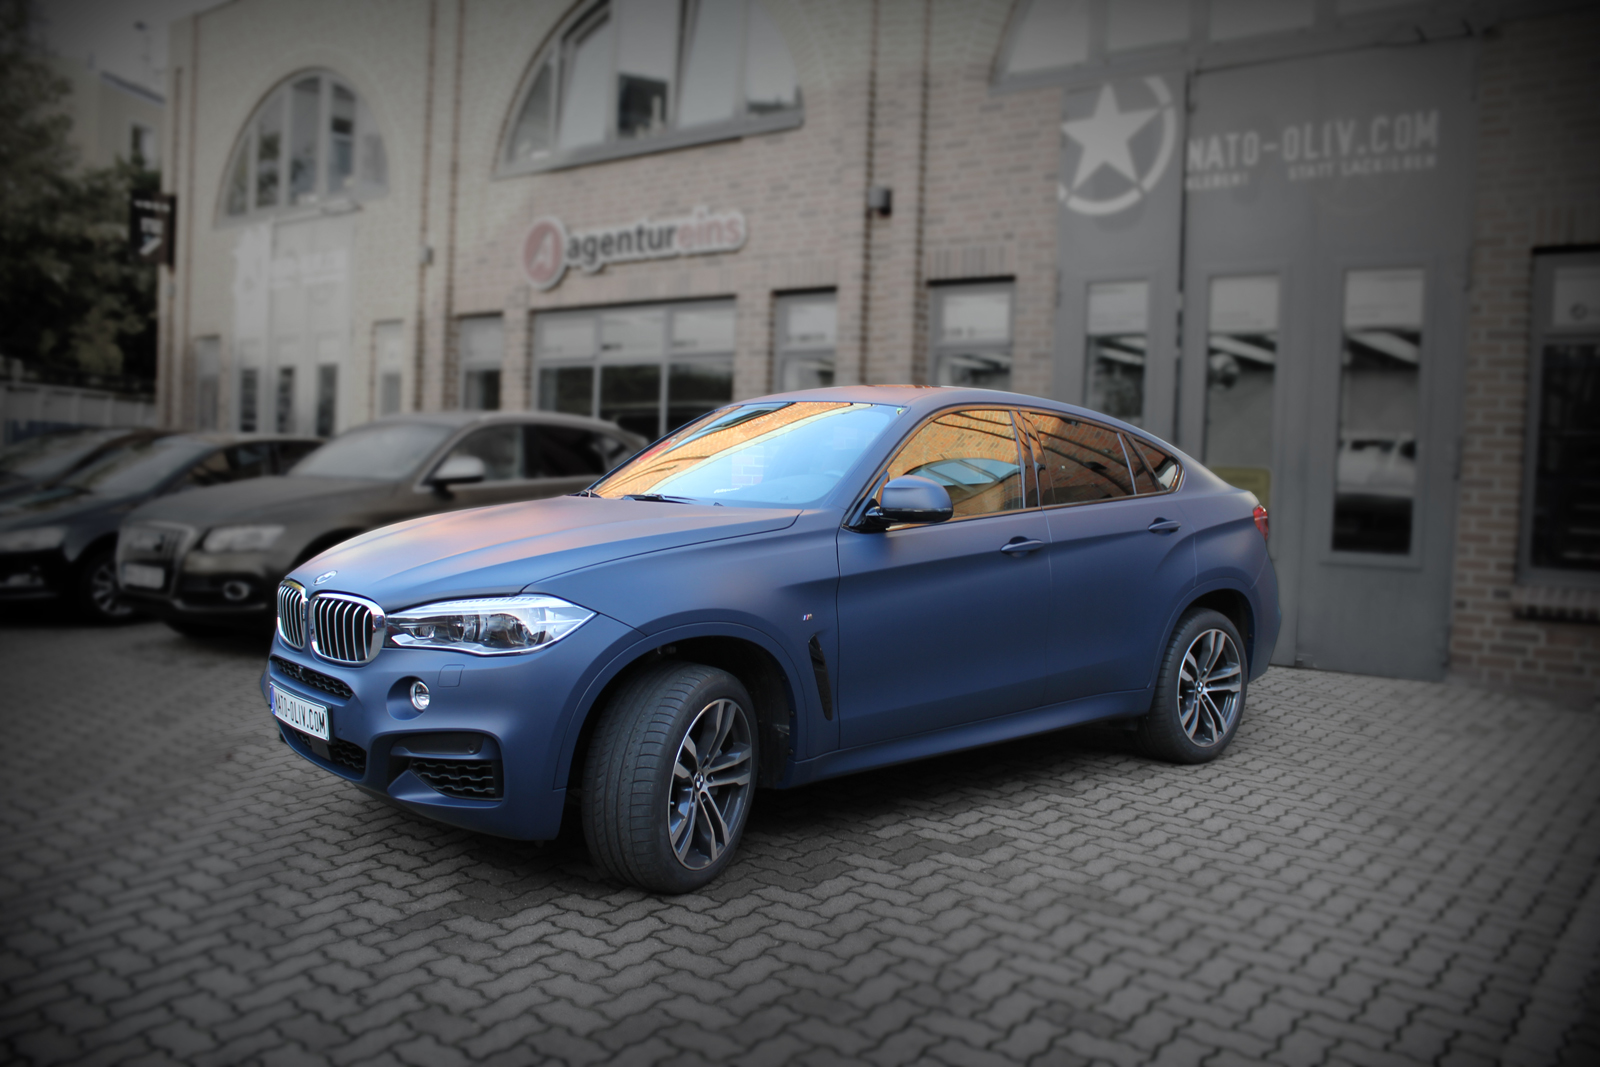 BMW_X6_CAR-WRAPPING_YACHTBLAU_MATT_Titelbild